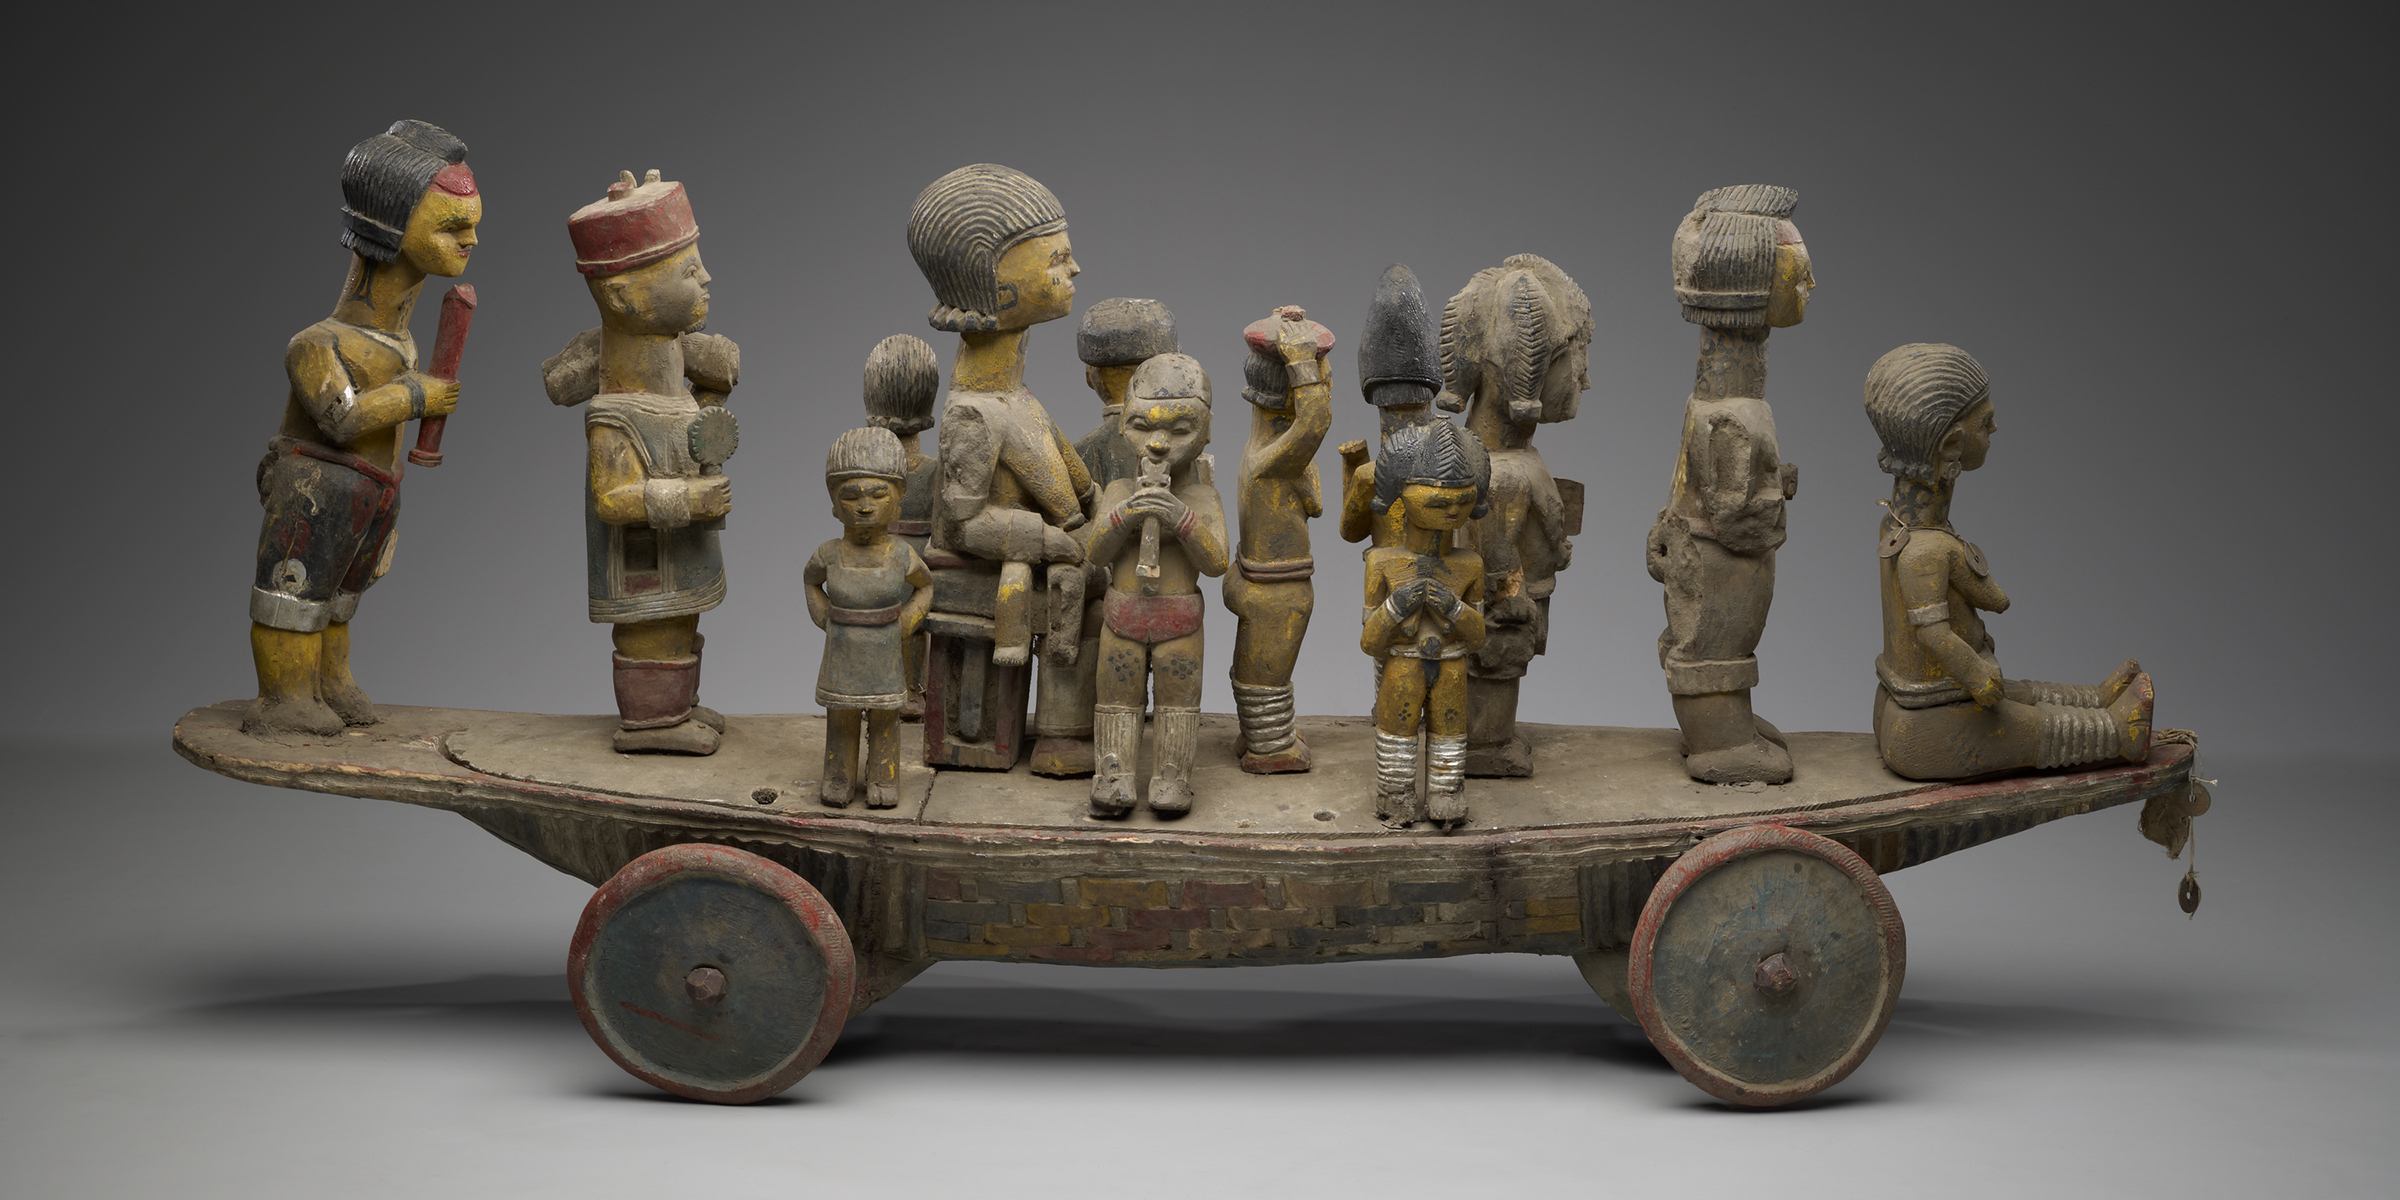 Boat on wheels supporting a queen and her entourage, Nigeria, twentieth century.